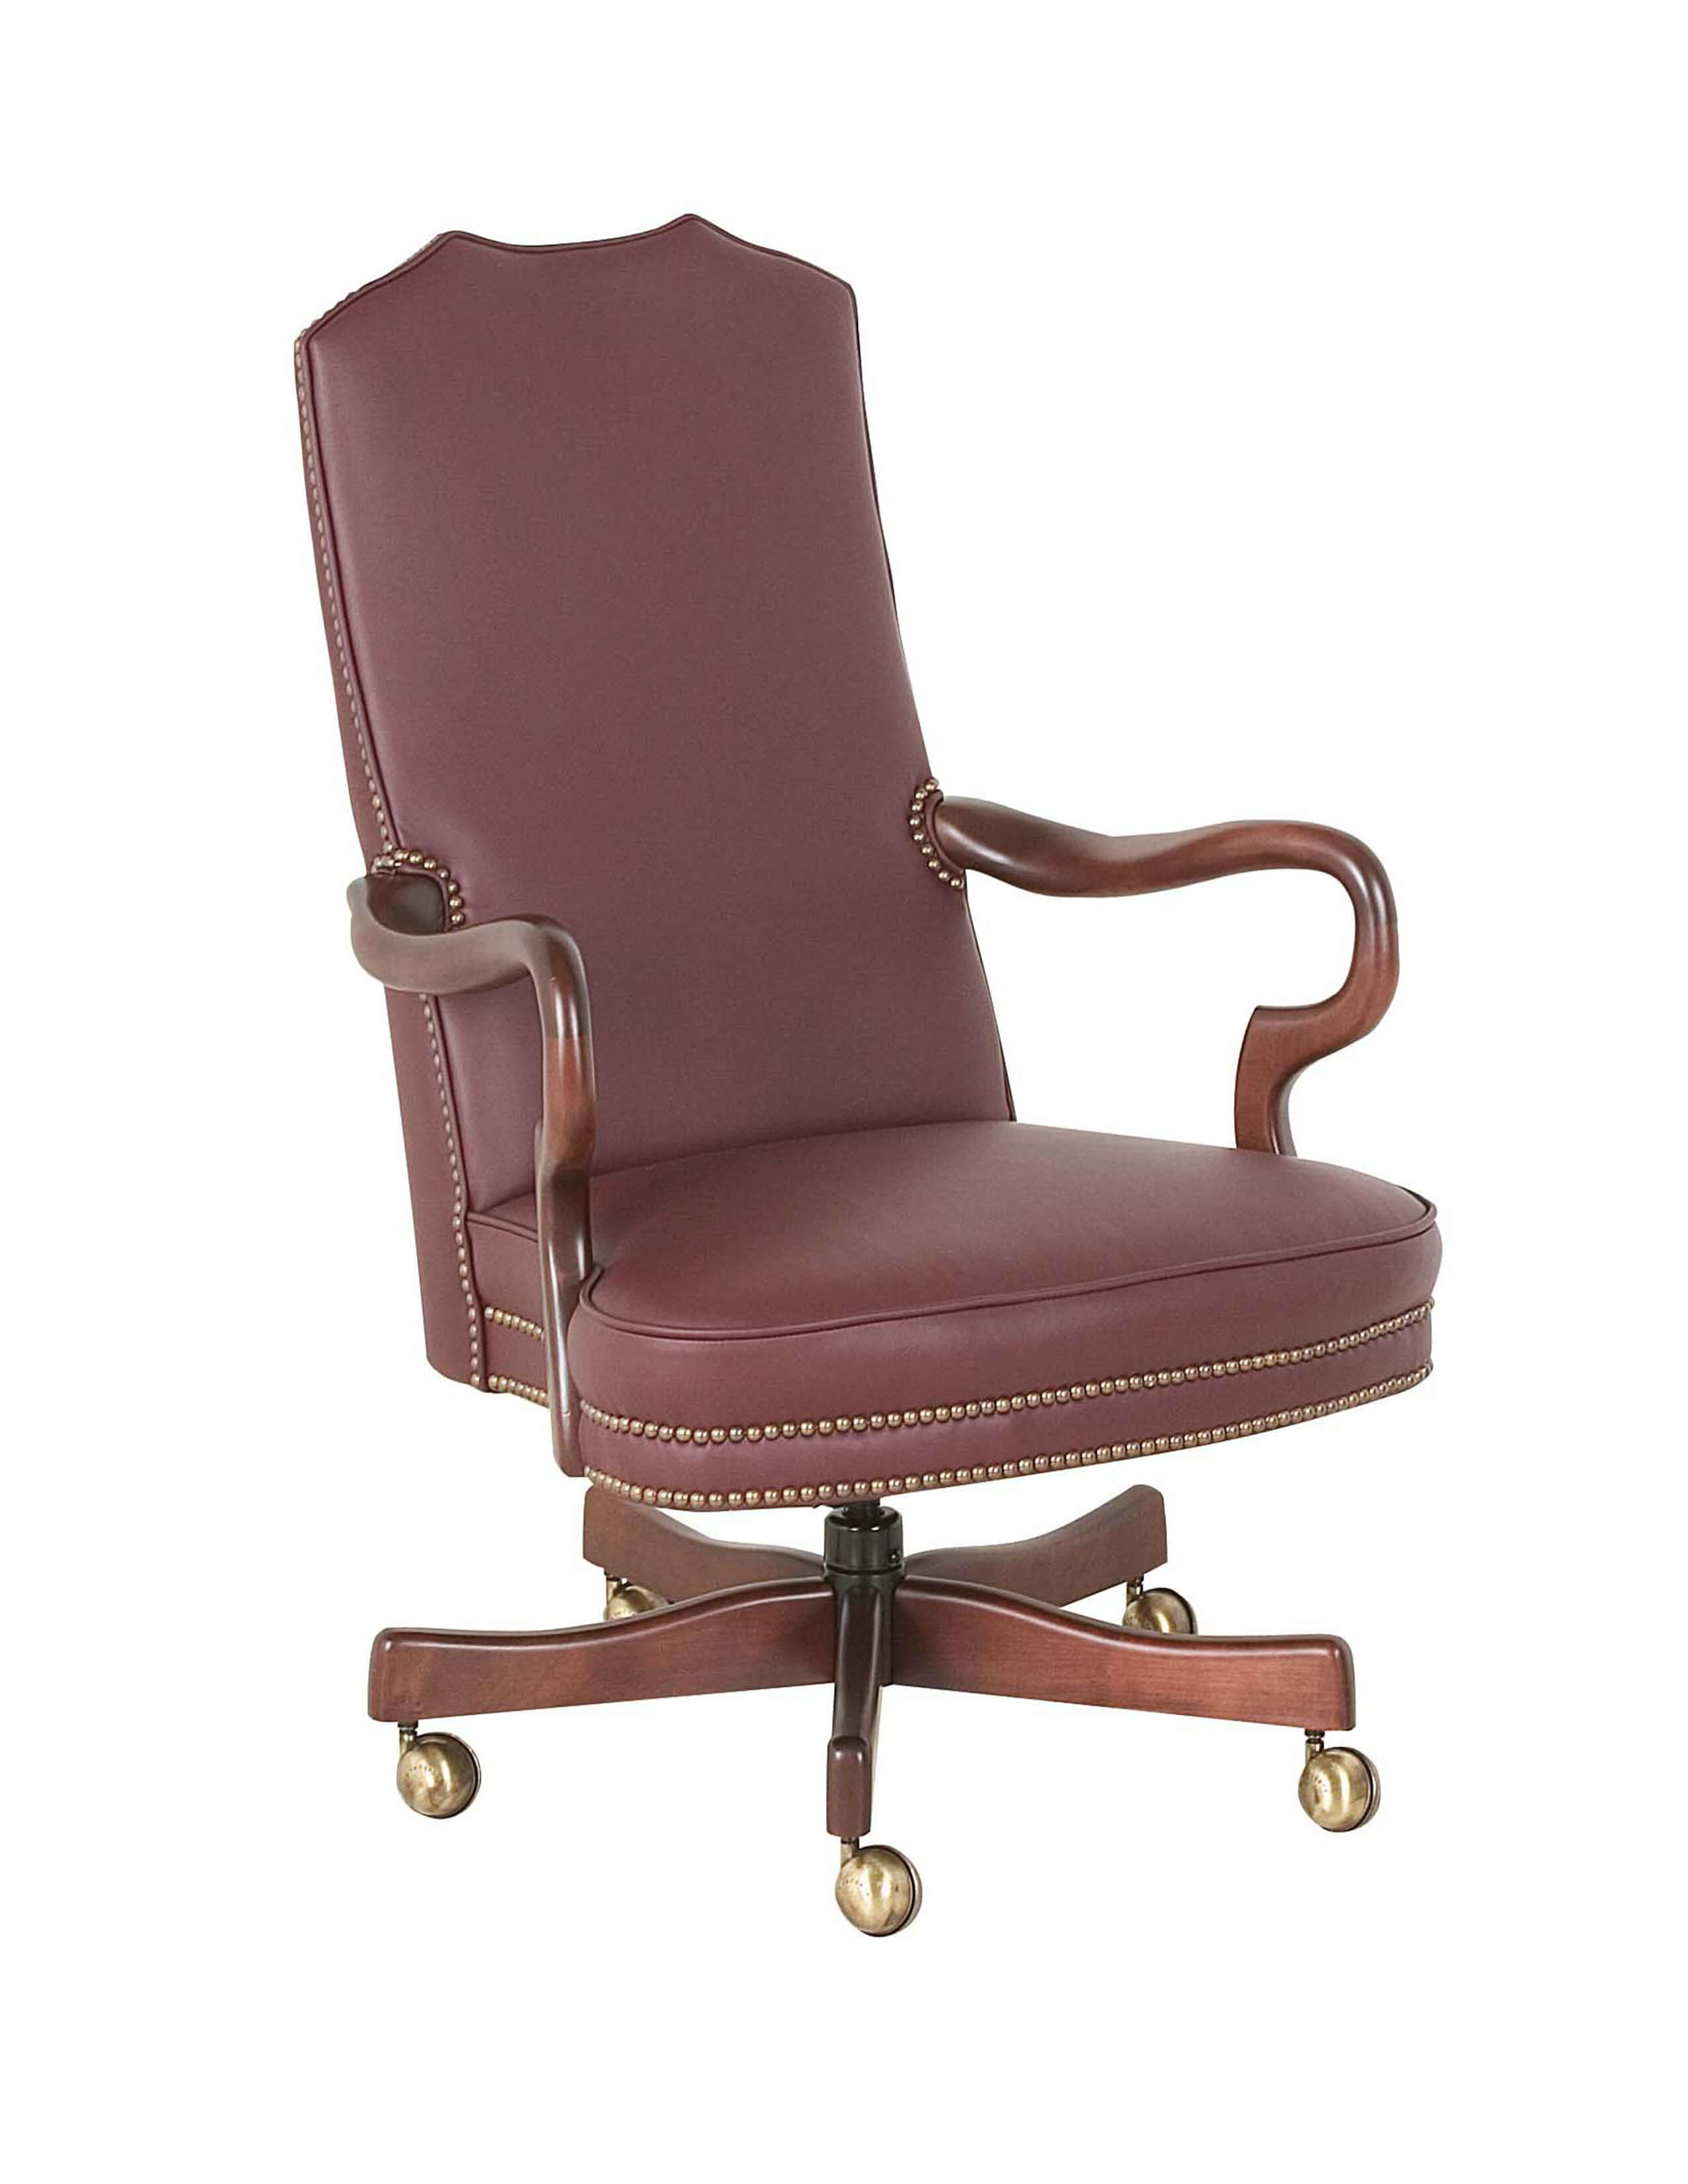 unique leather office chairs beach chair with leg rest classic seating 606 st goose neck swivel tilt